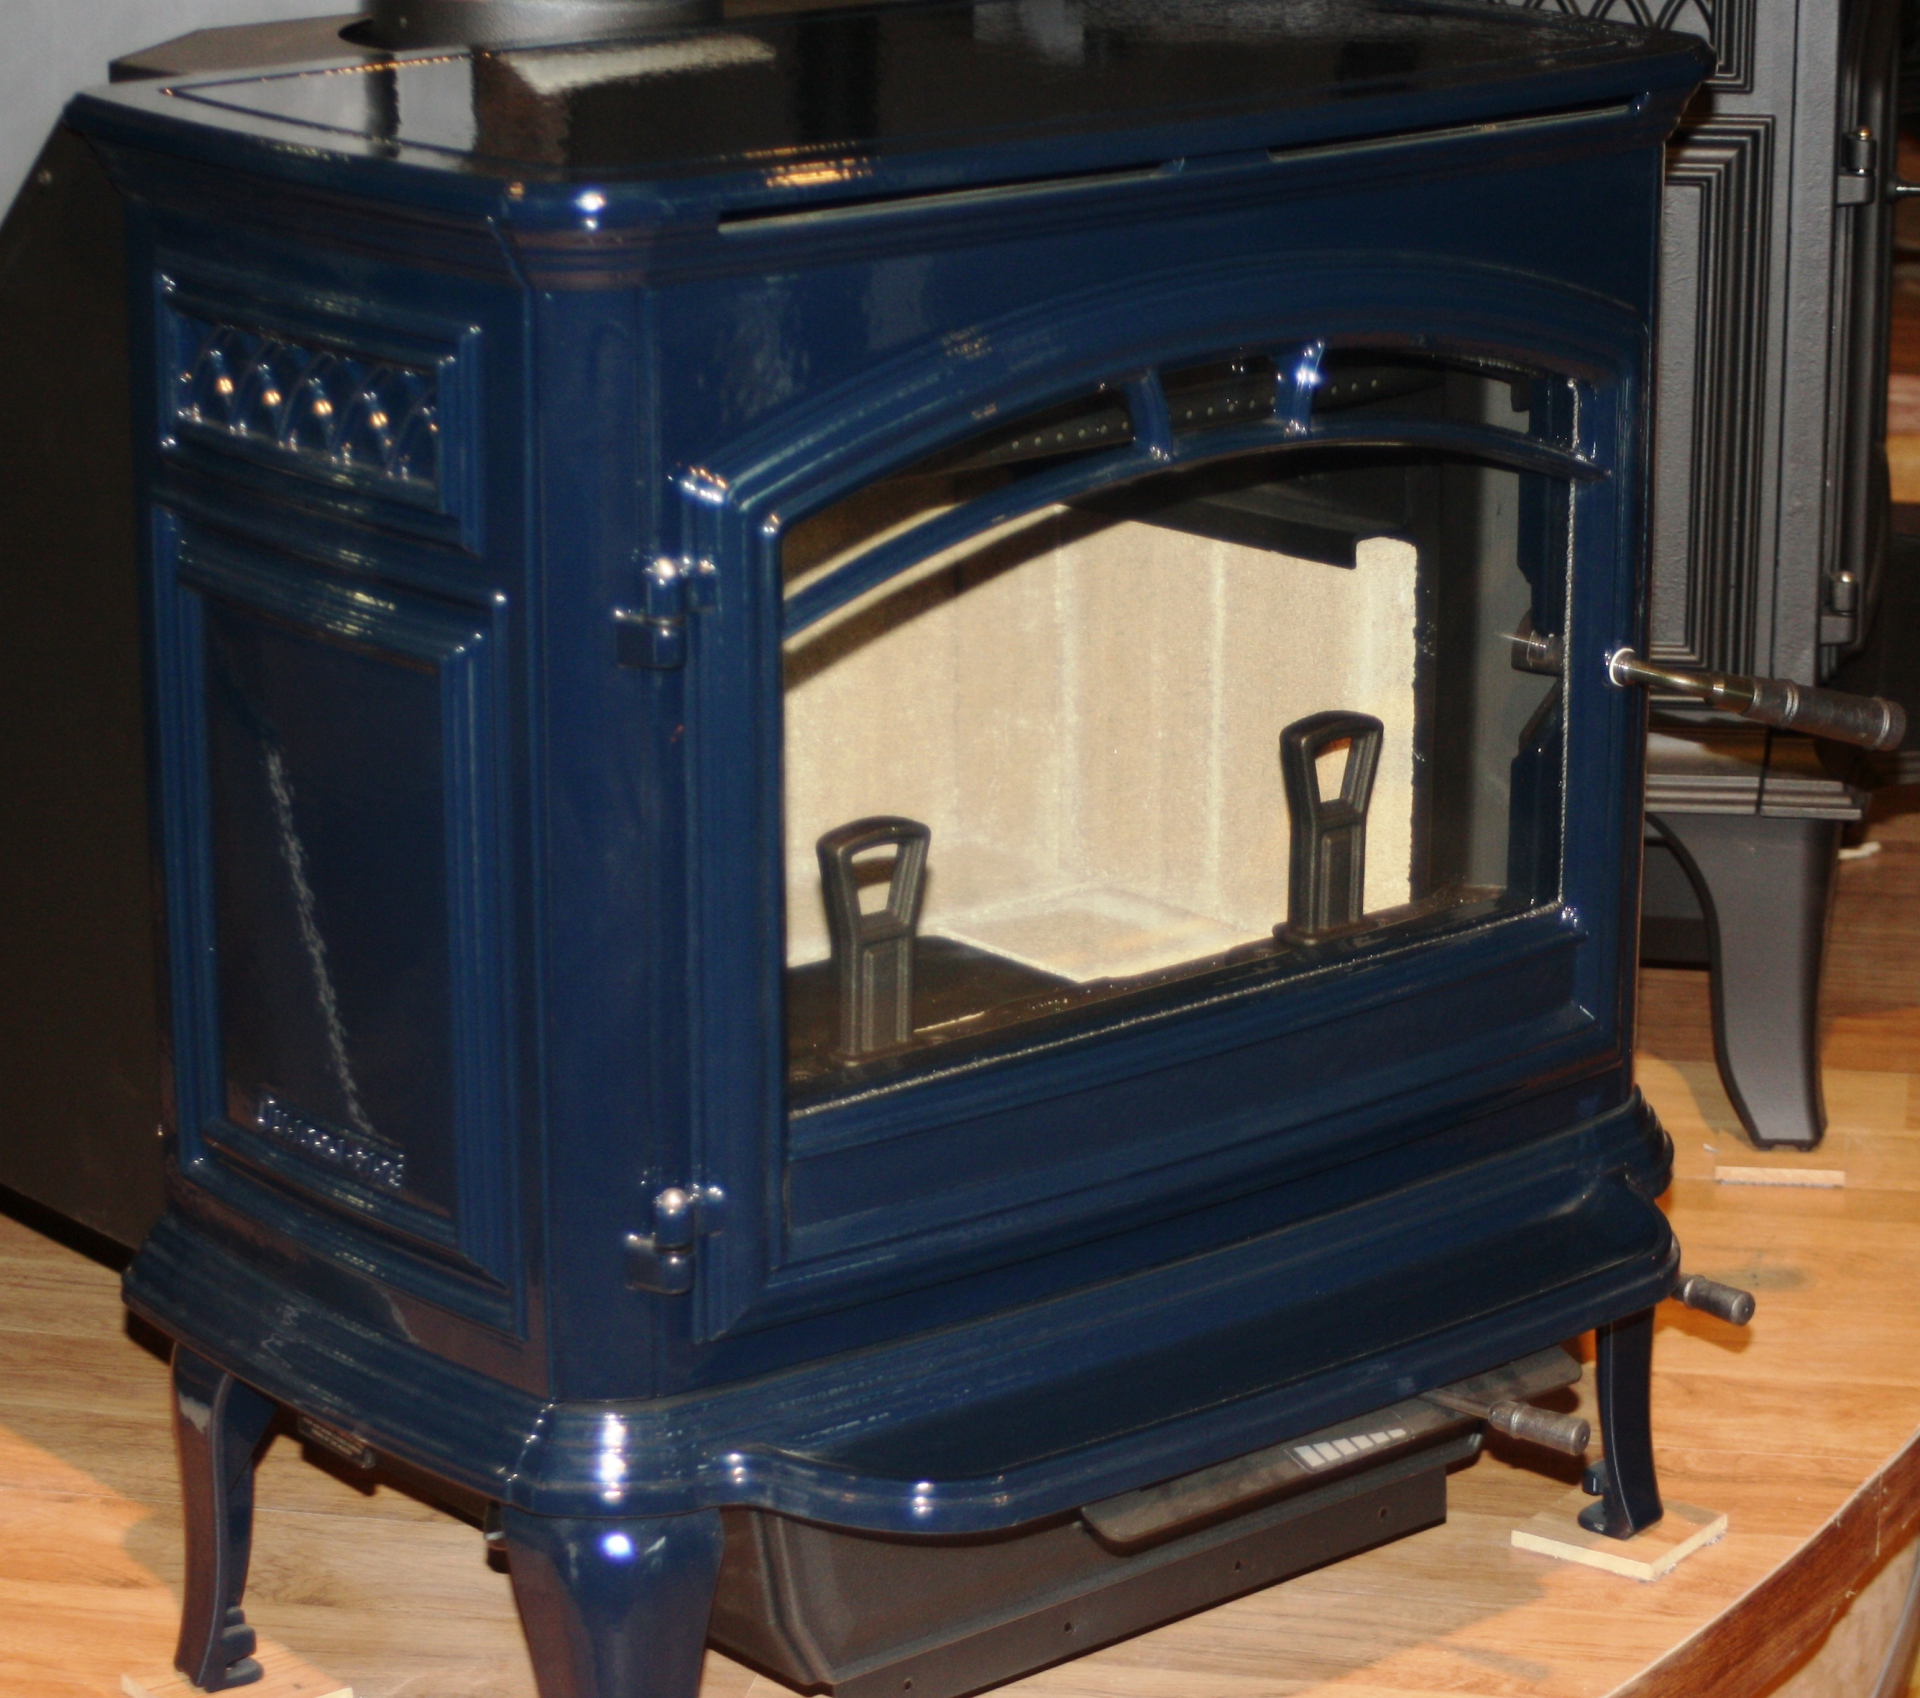 Quadra-Fire Explorer II Wood Stove, Blue Enamel